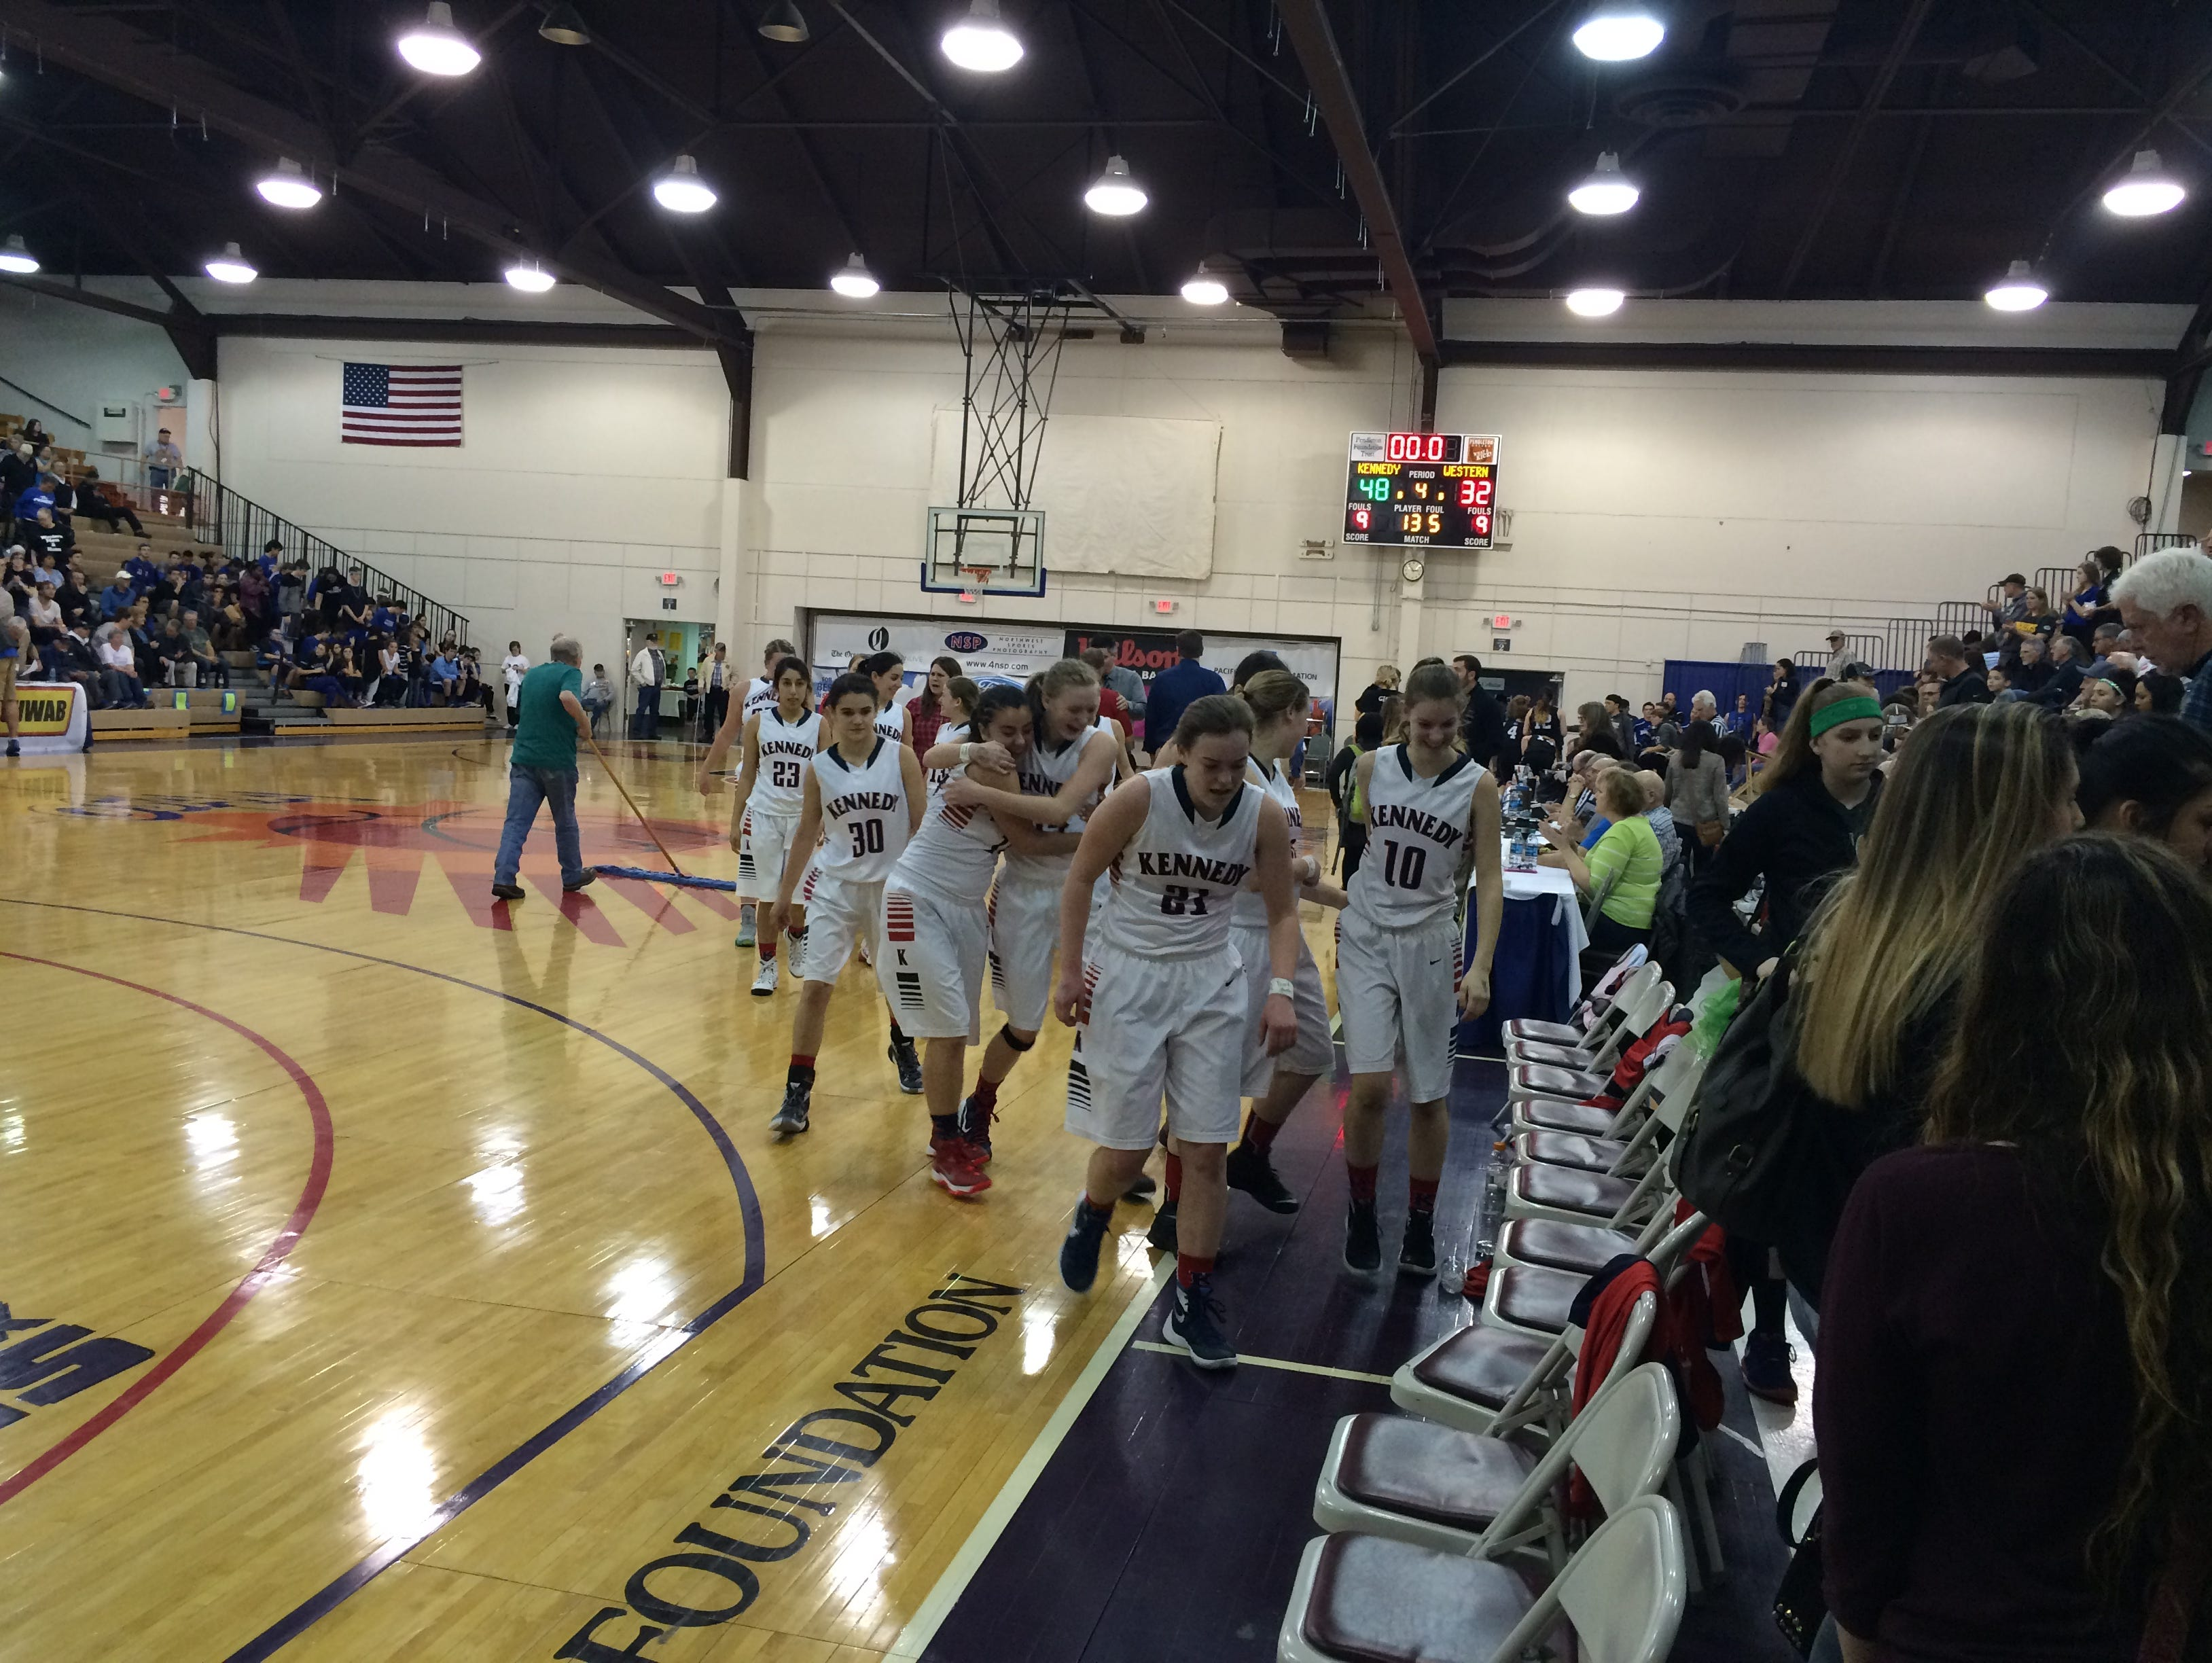 Kennedy's girls basketball team celebrates its state semifinal victory against Western Mennonite on Friday in Pendleton.